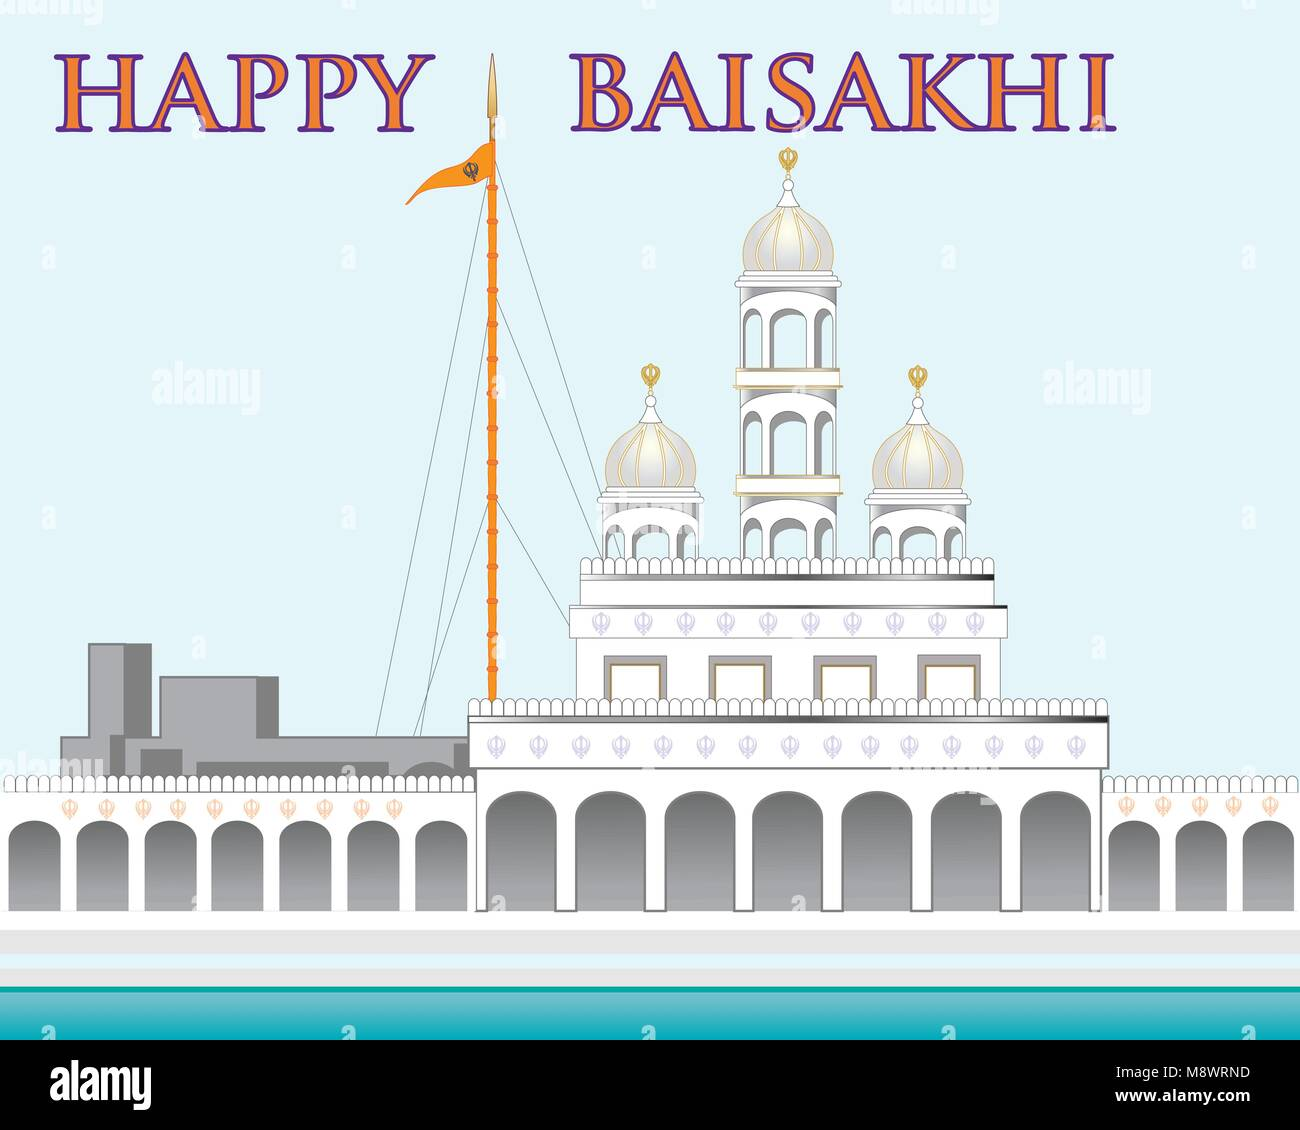 a vector illustration in eps 10 format of a beautiful gurdwara on a blue background with the words happy Baisakhi - Stock Vector